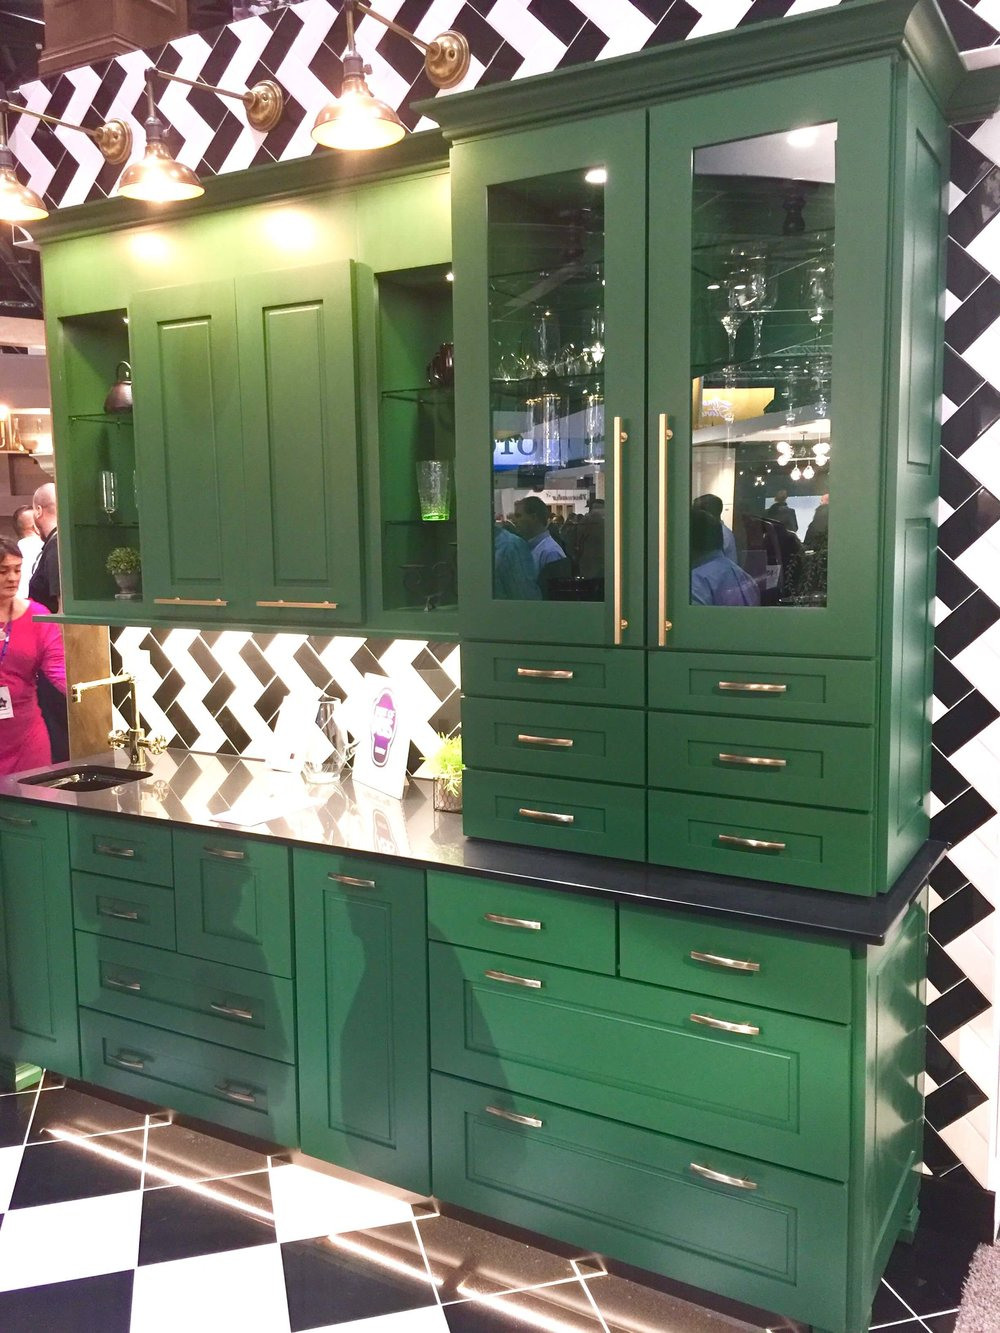 Wellborn Cabinets emerald green color looked sharp with black, white, and brass.